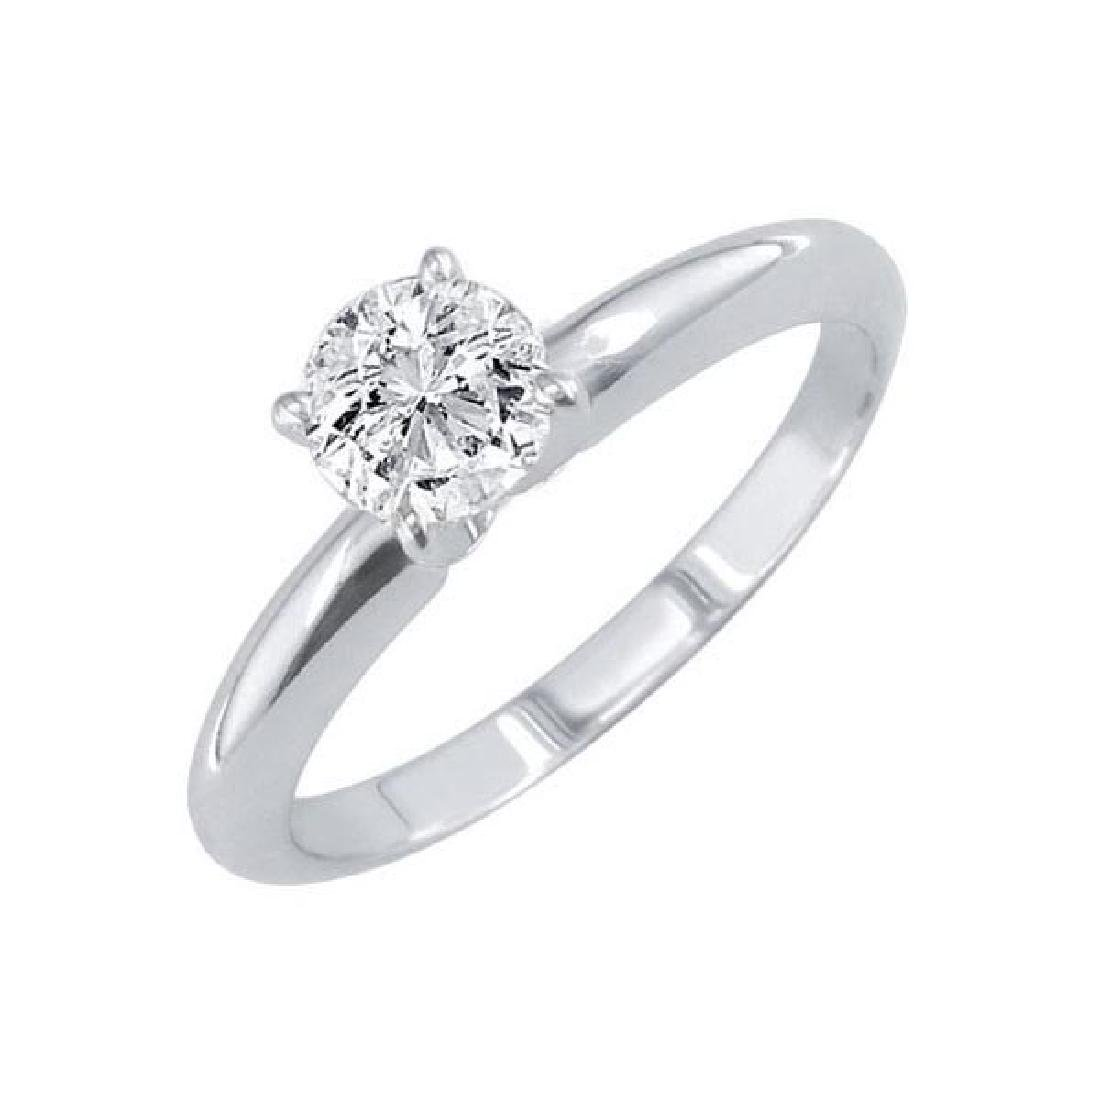 Certified 1.04 CTW Round Diamond Solitaire 14k Ring D/S